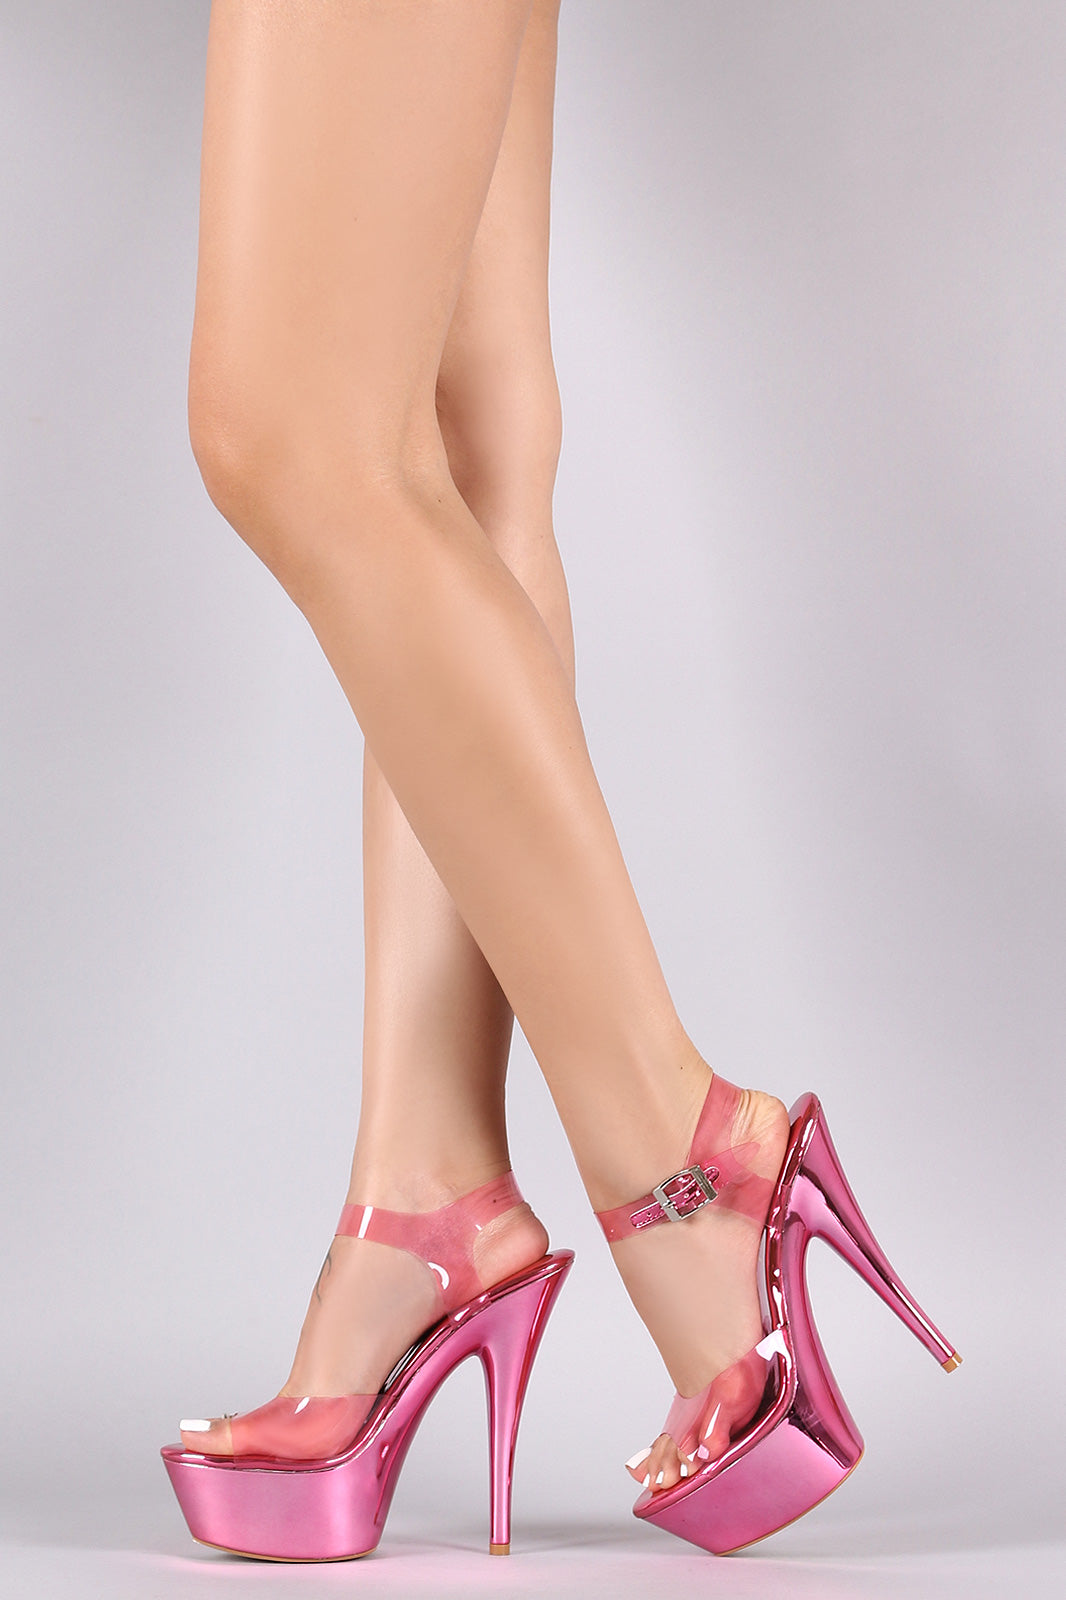 Transparent Ankle Strap Metallic Platform Stiletto Heel